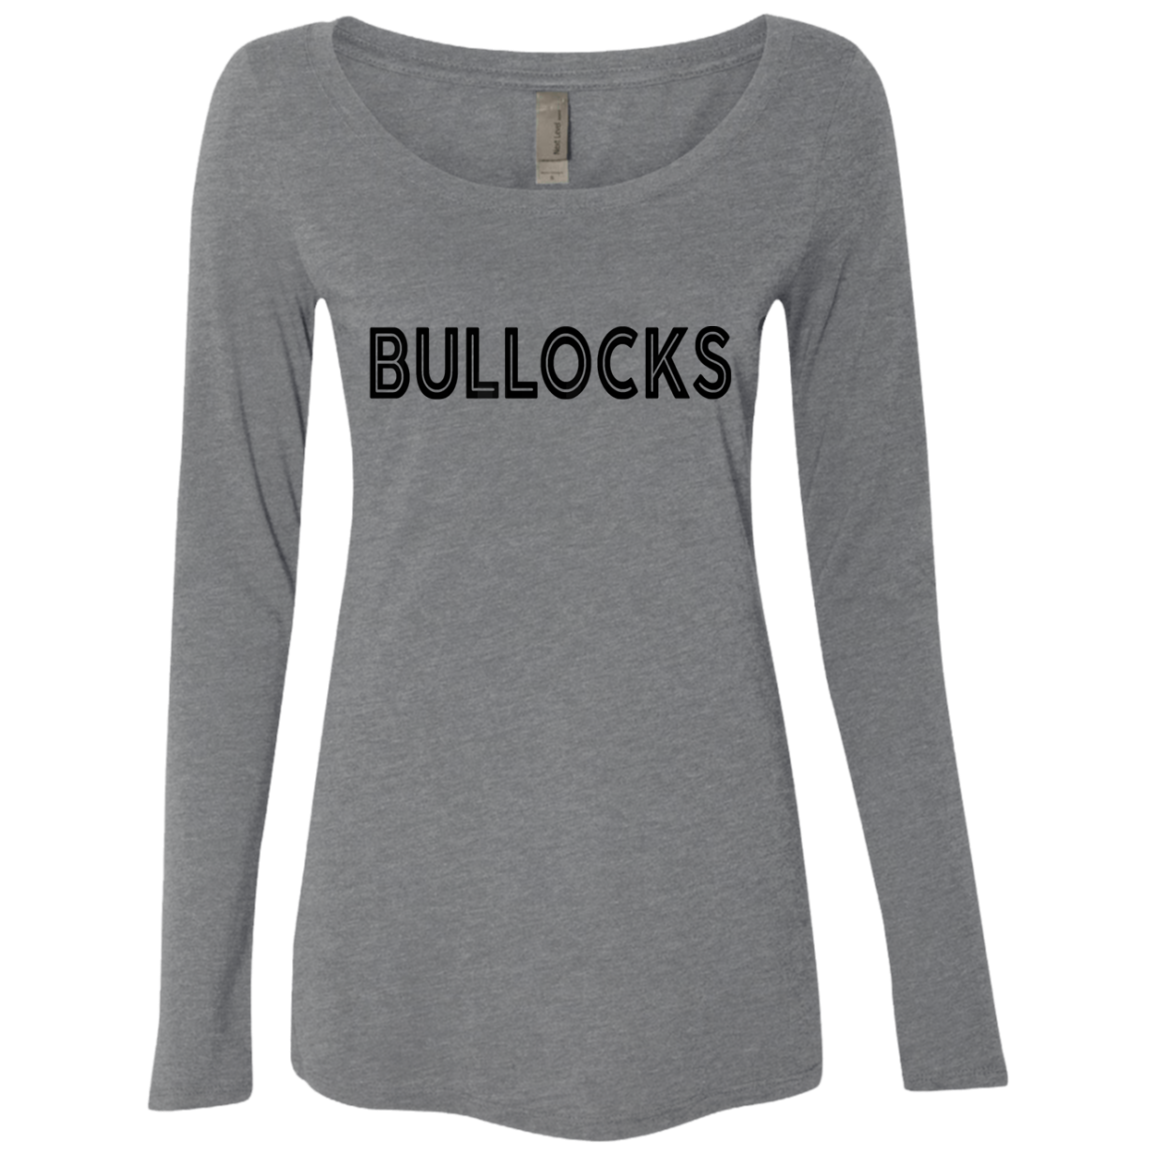 Bullocks Women's Long Sleeve Tee